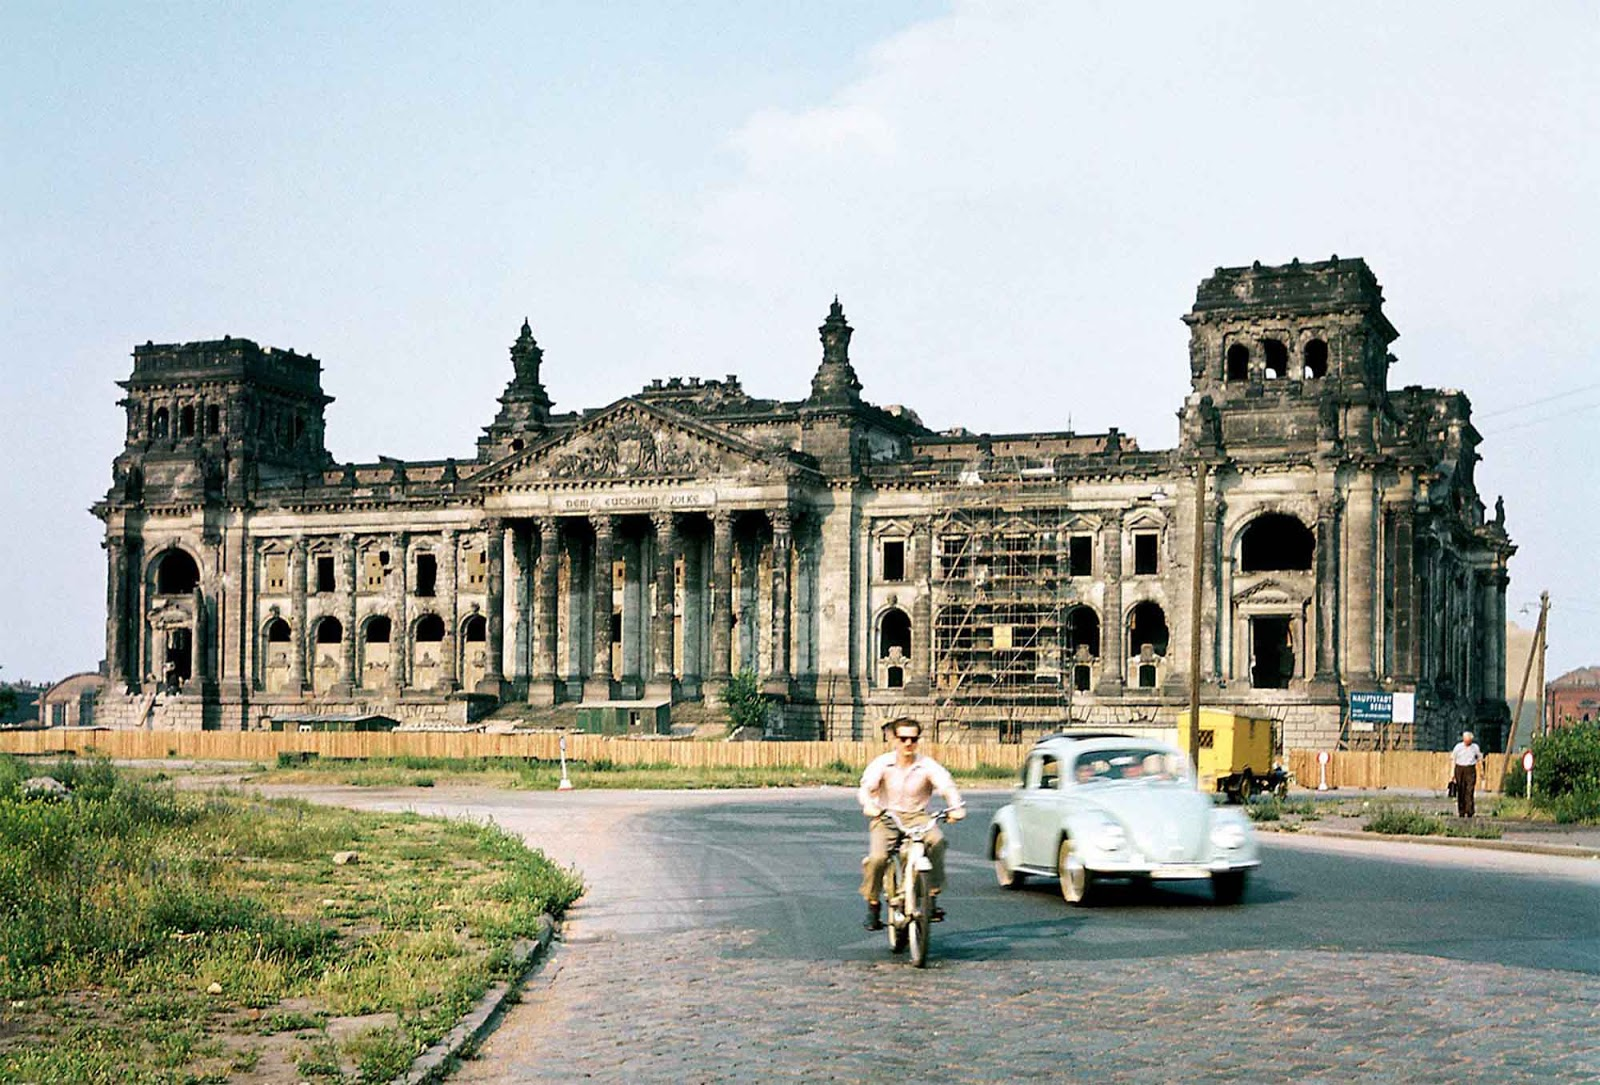 The restoration done in the 1950's was only minimal as the building could not be used as the seat of government for West Germany (the Reichstag was just at the Berlin Wall and West German politicians didn't want to have their seat of government in a tiny exclave in the East).